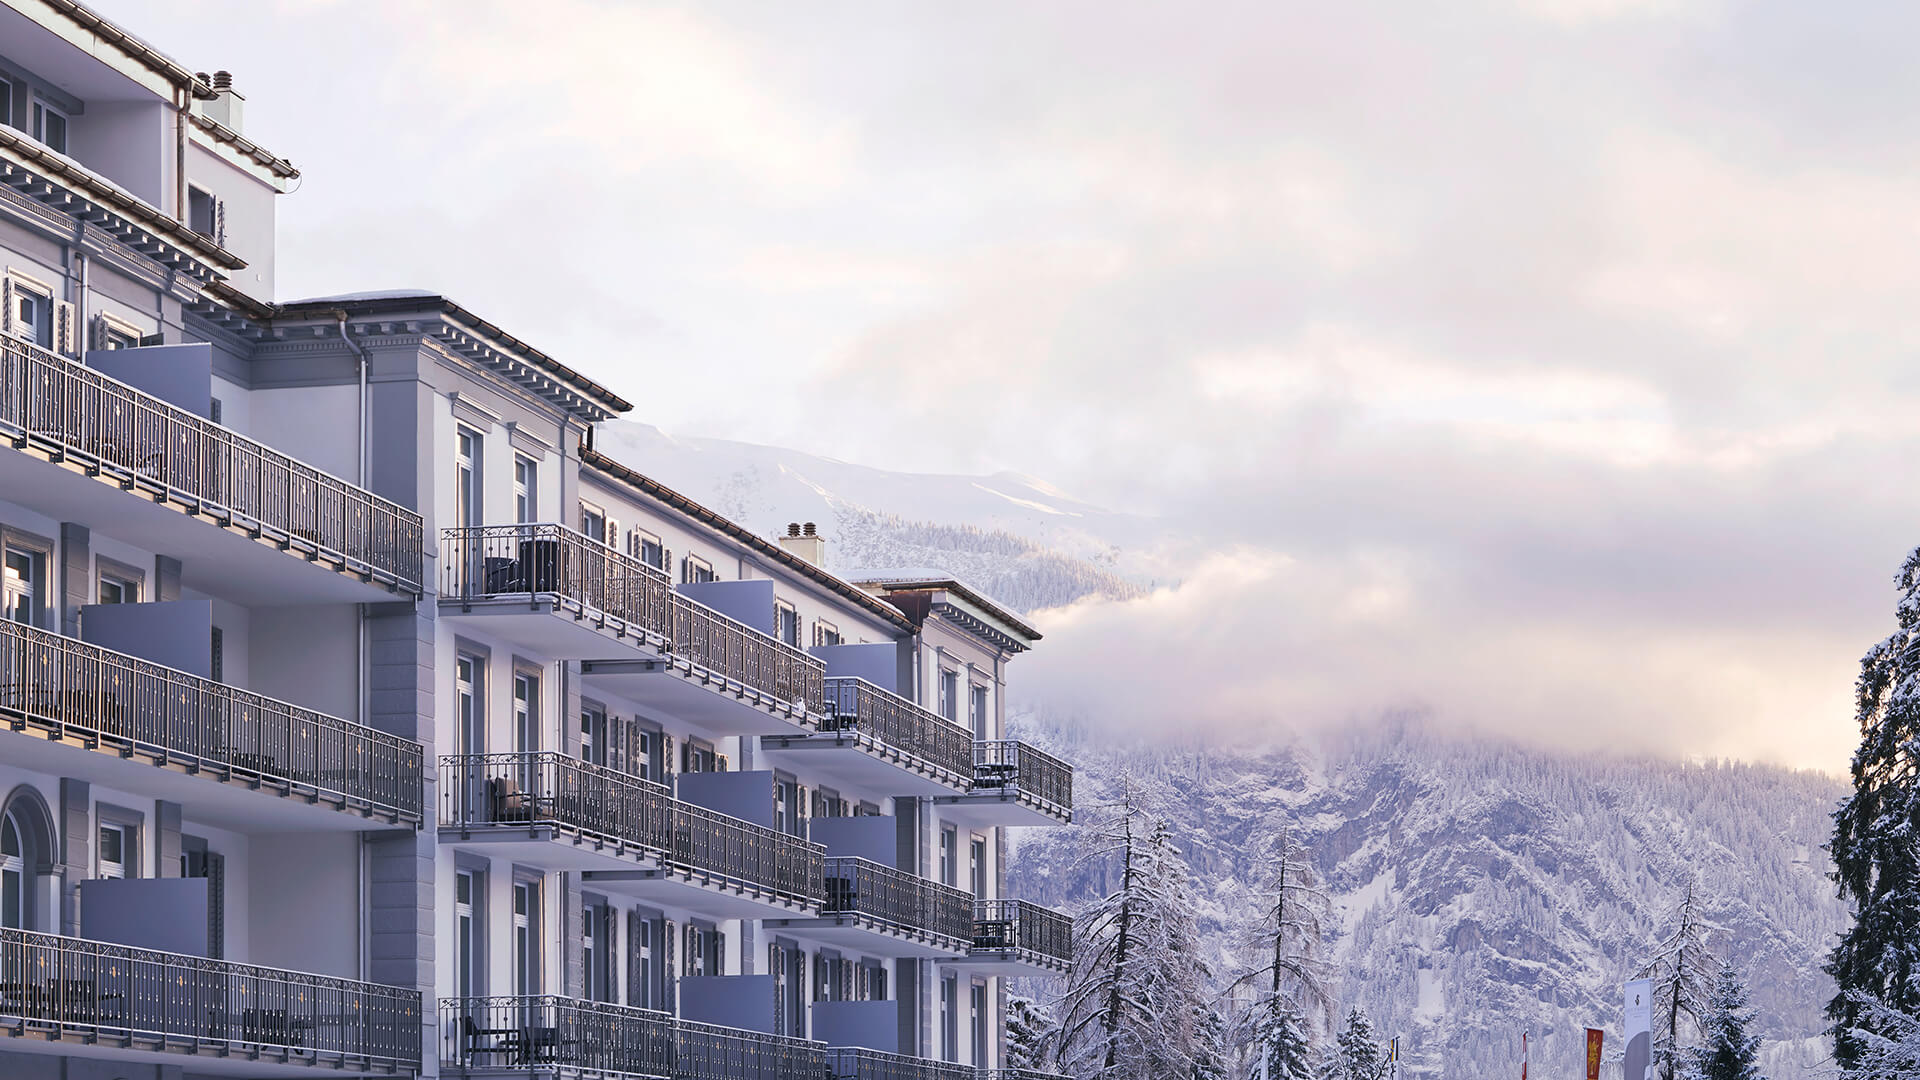 Grand hotel with partial cloud covered snowy mountains